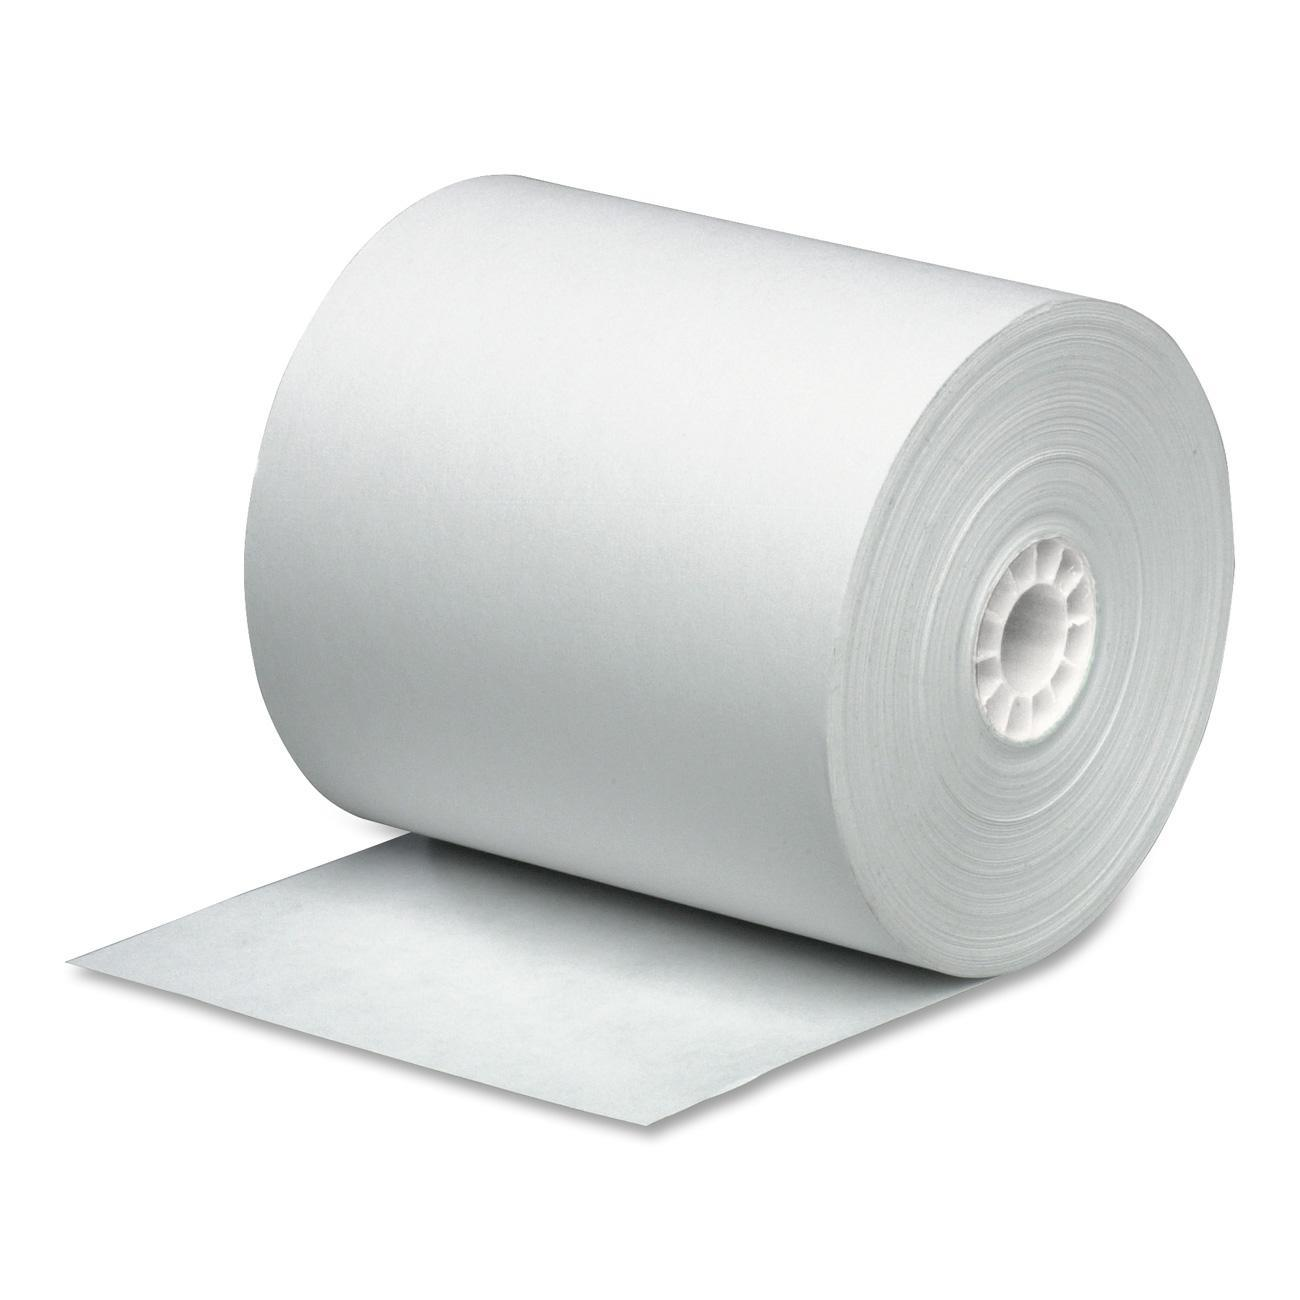 "Bond Paper Roll - 3"" x 200' (50rolls/box)"